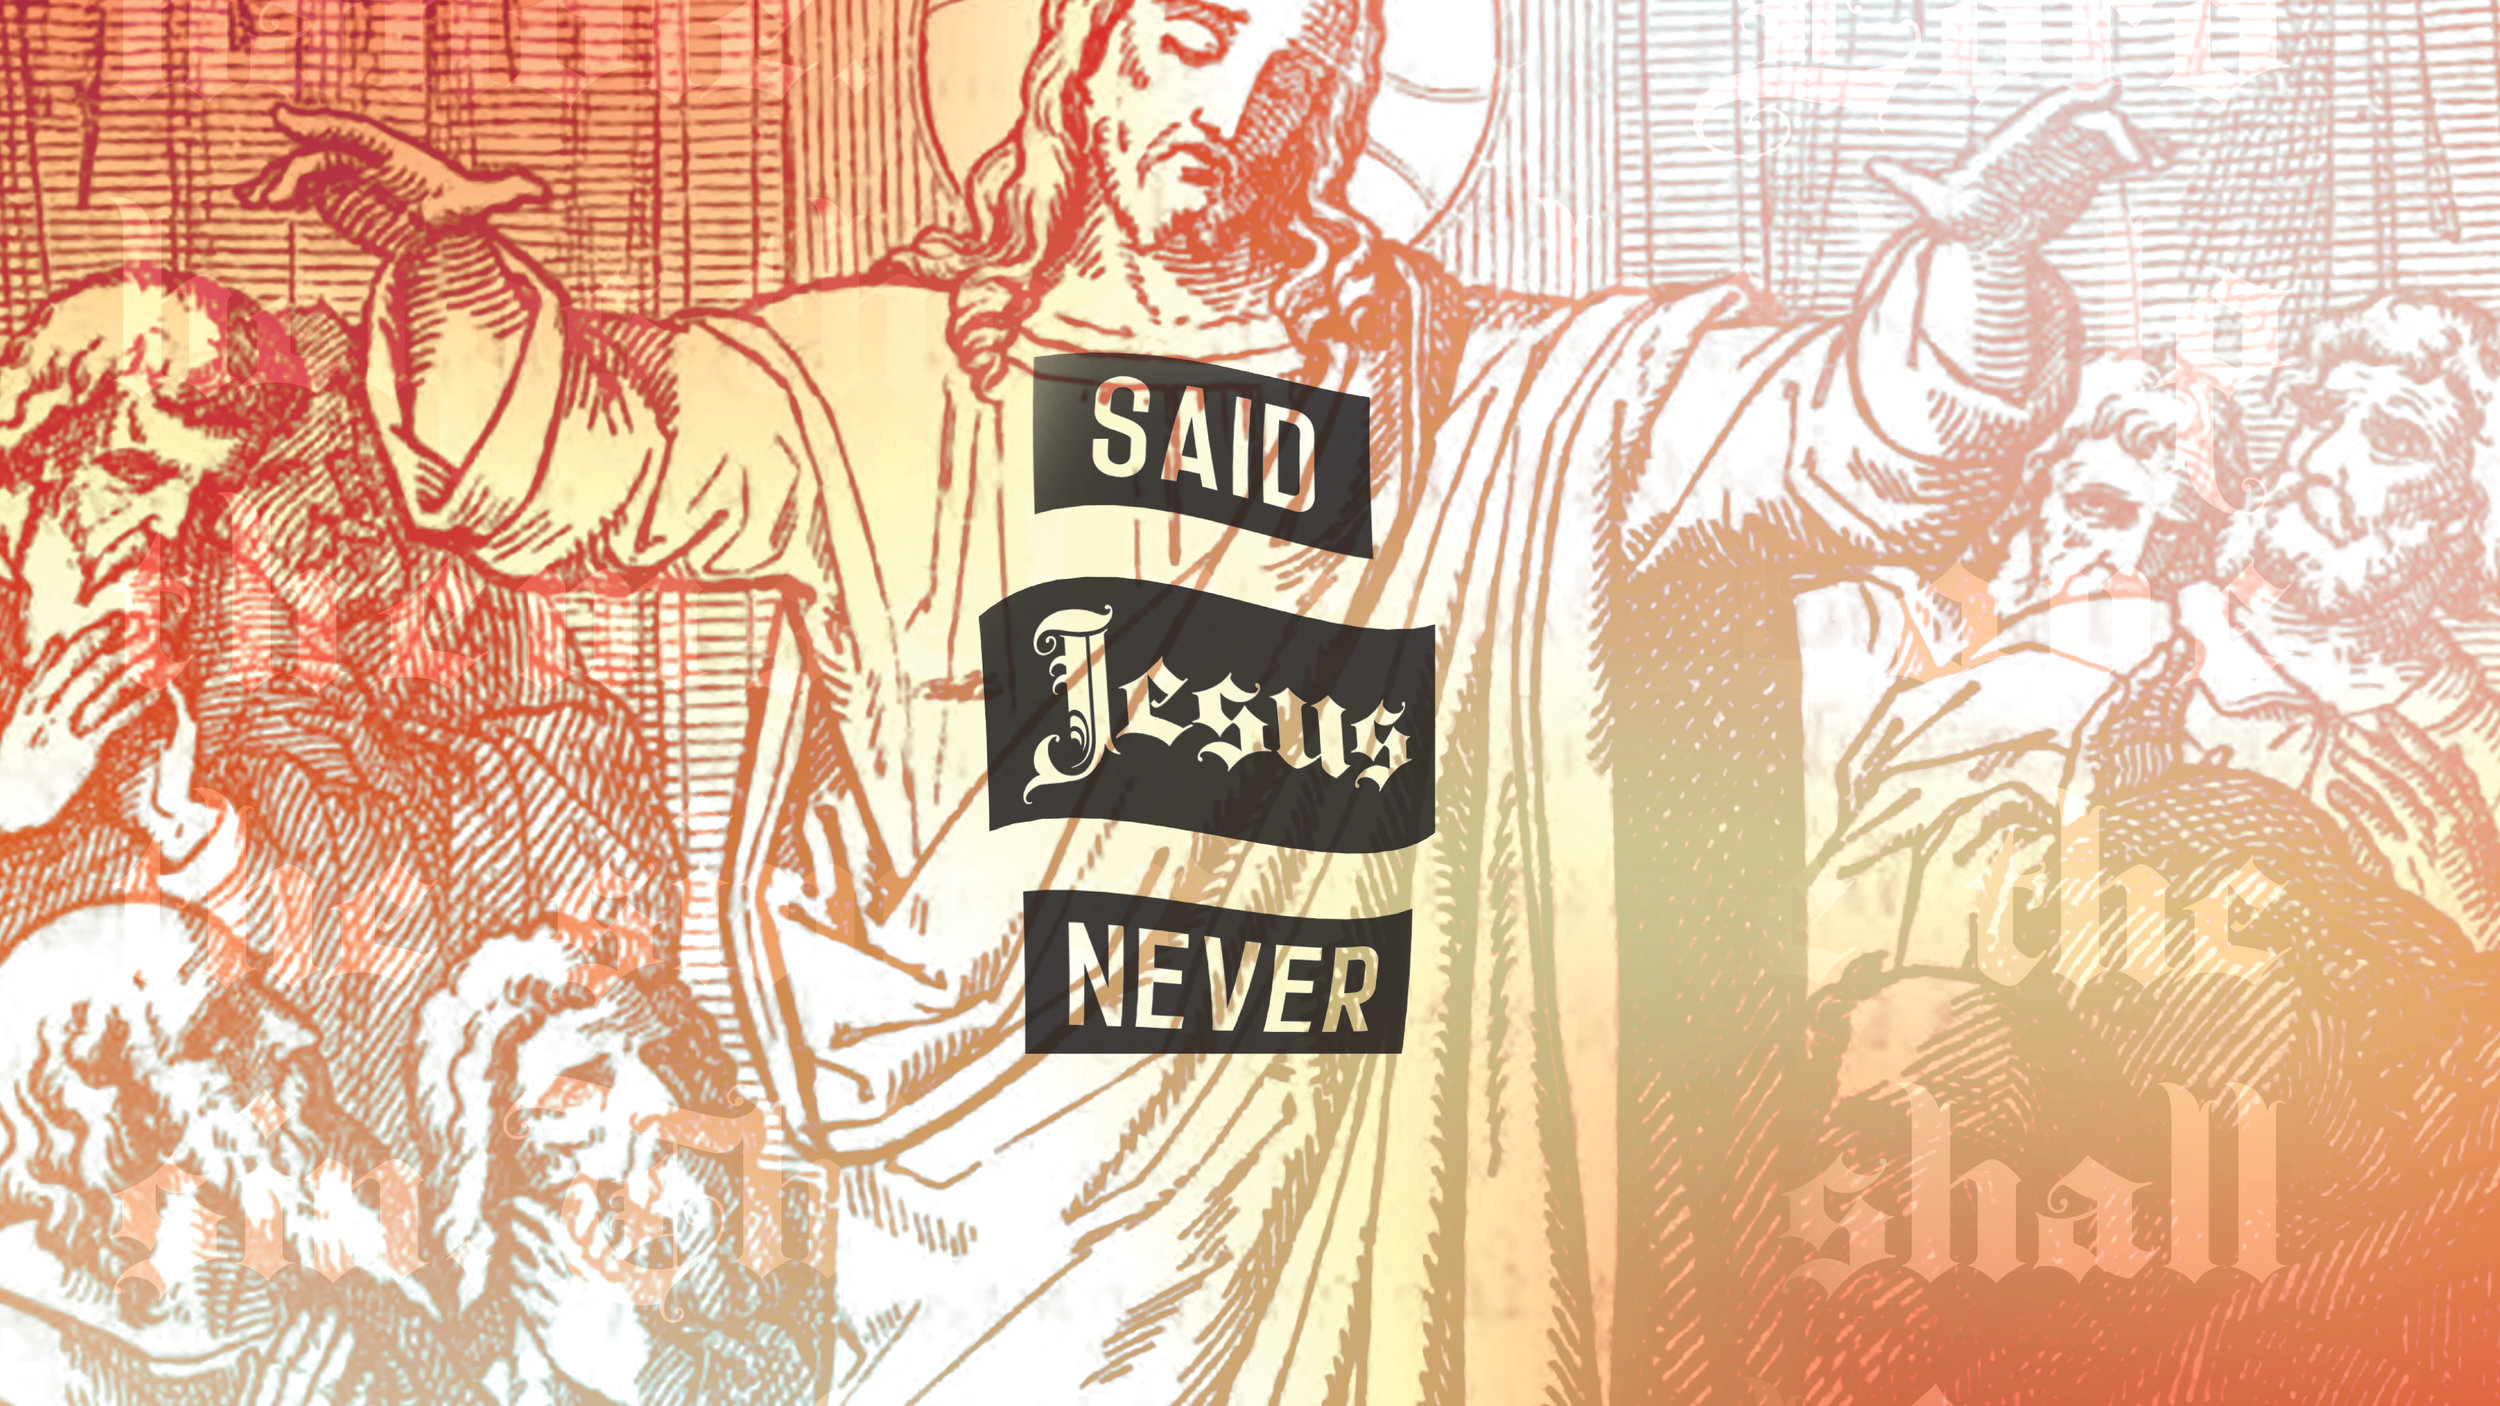 Said Jesus Never Red.jpg